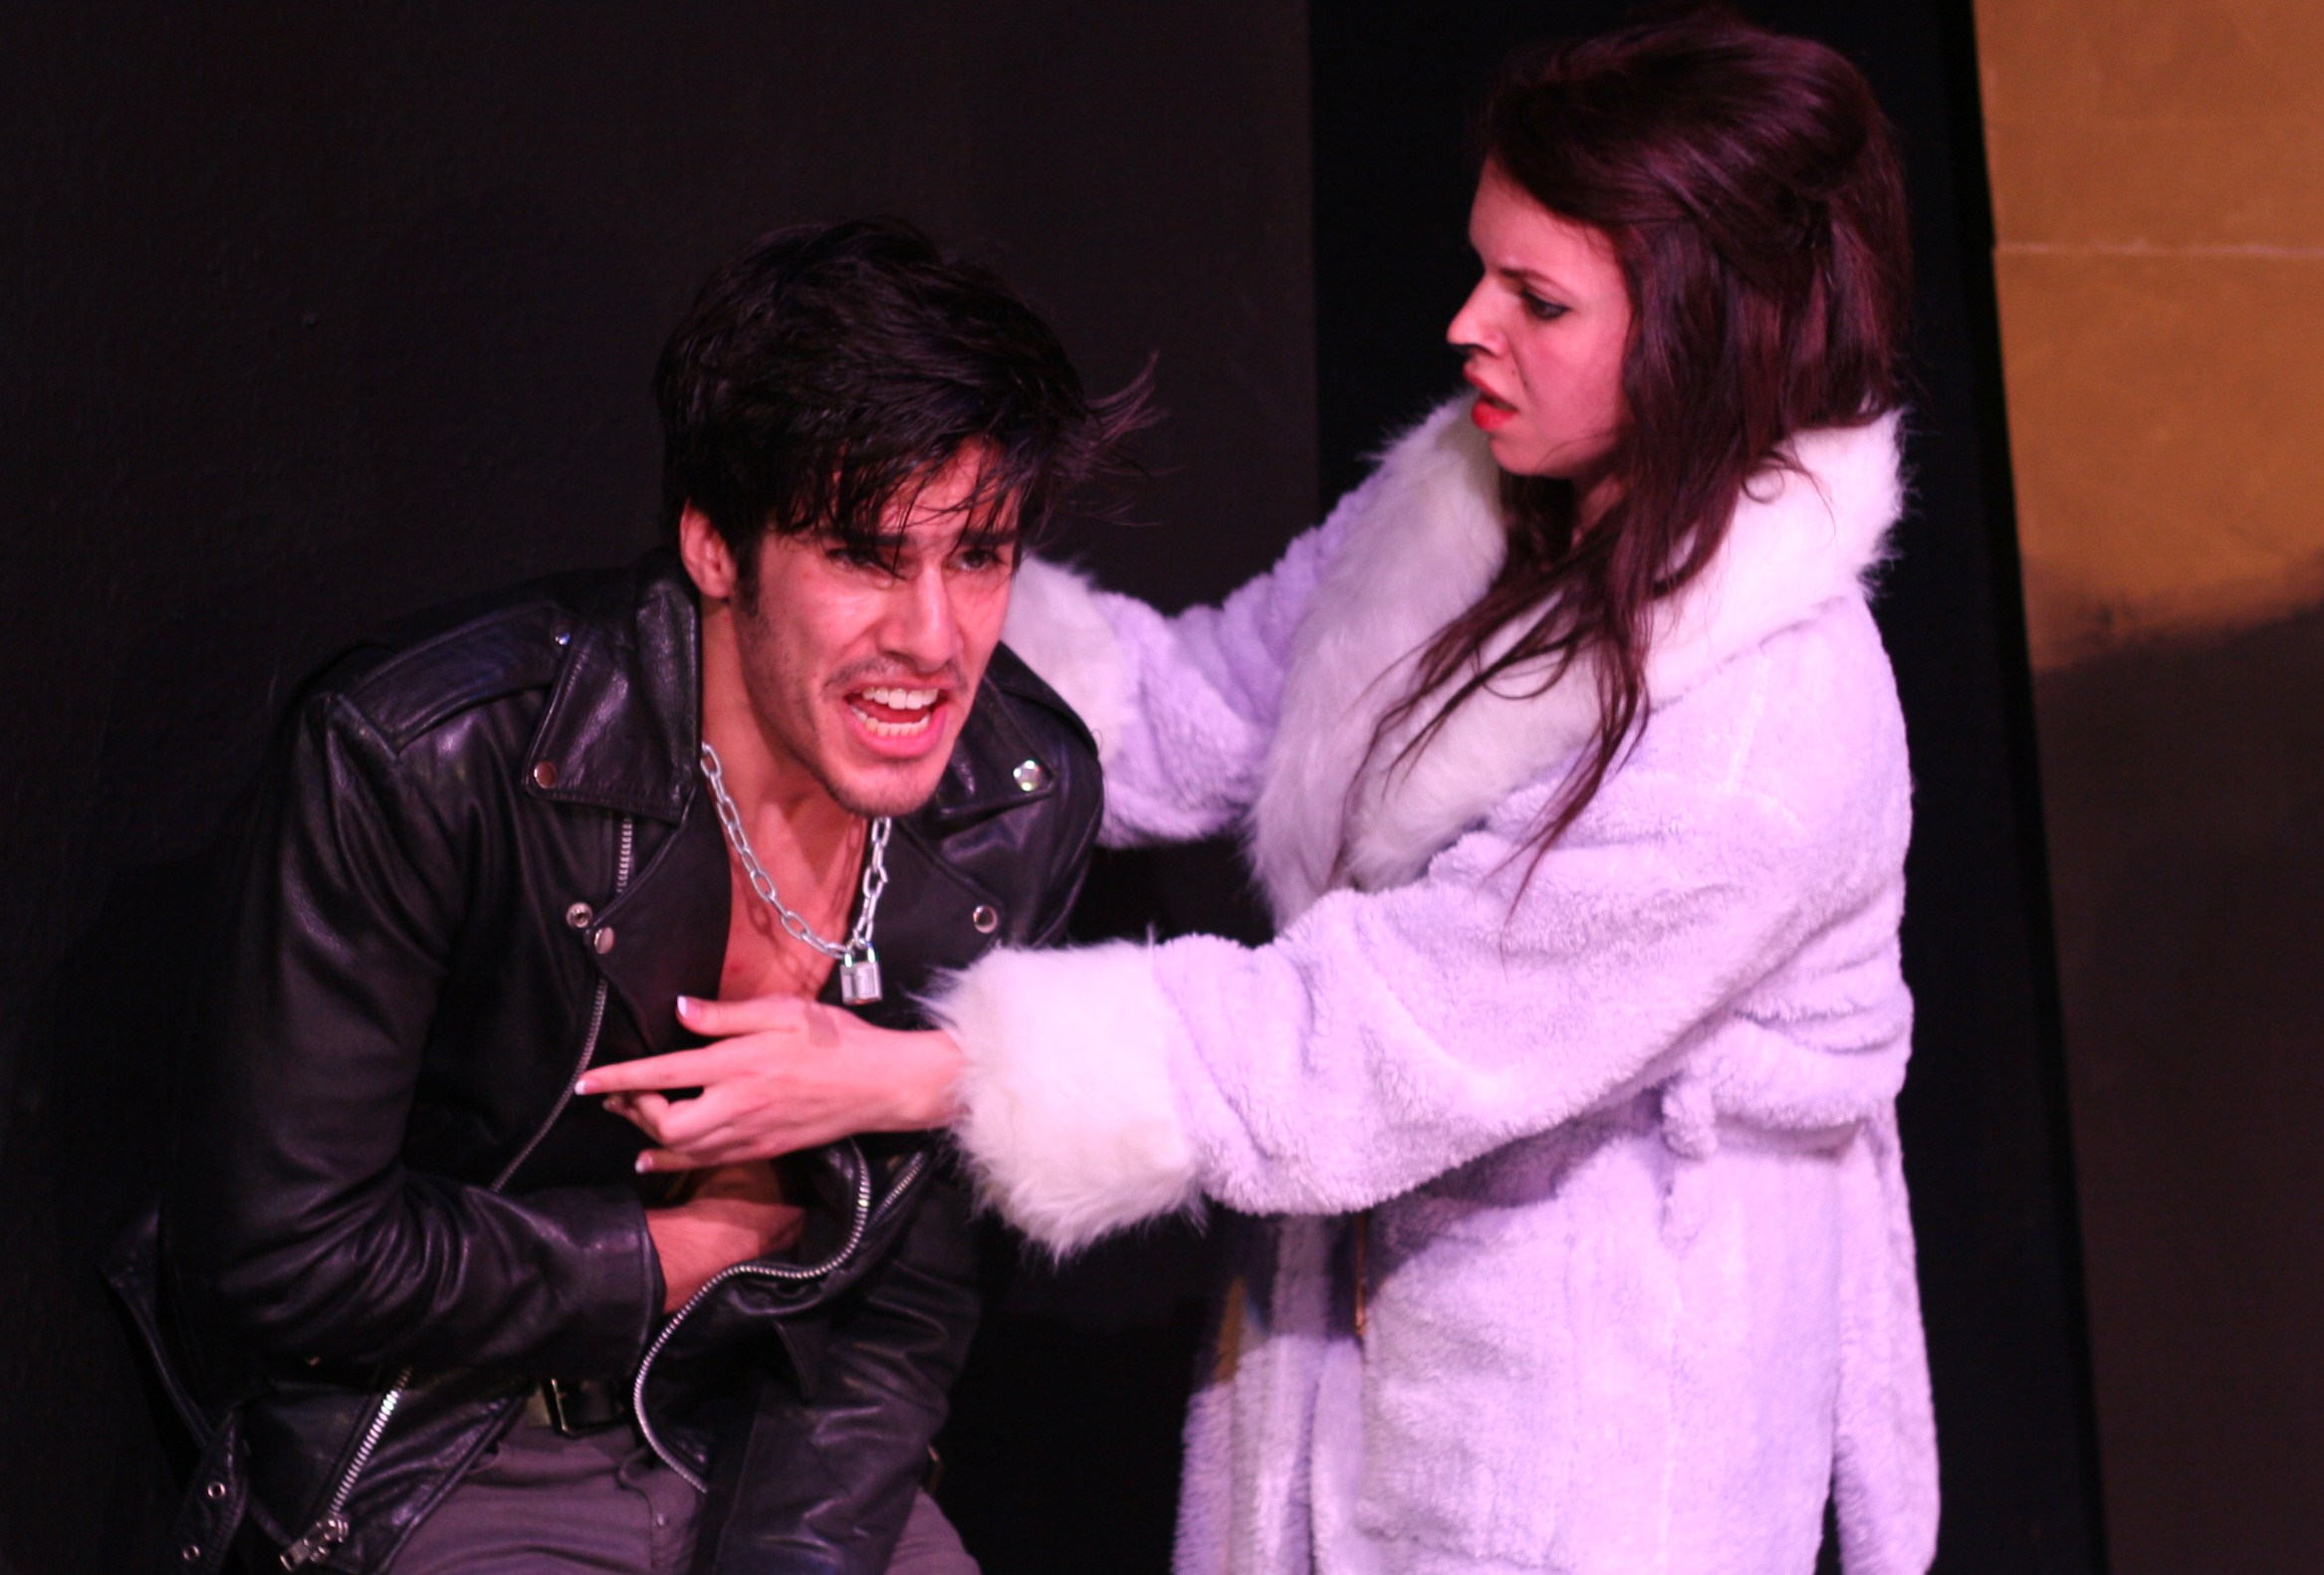 Pablo Munoz as Coyote and Noella Schluter as Cat